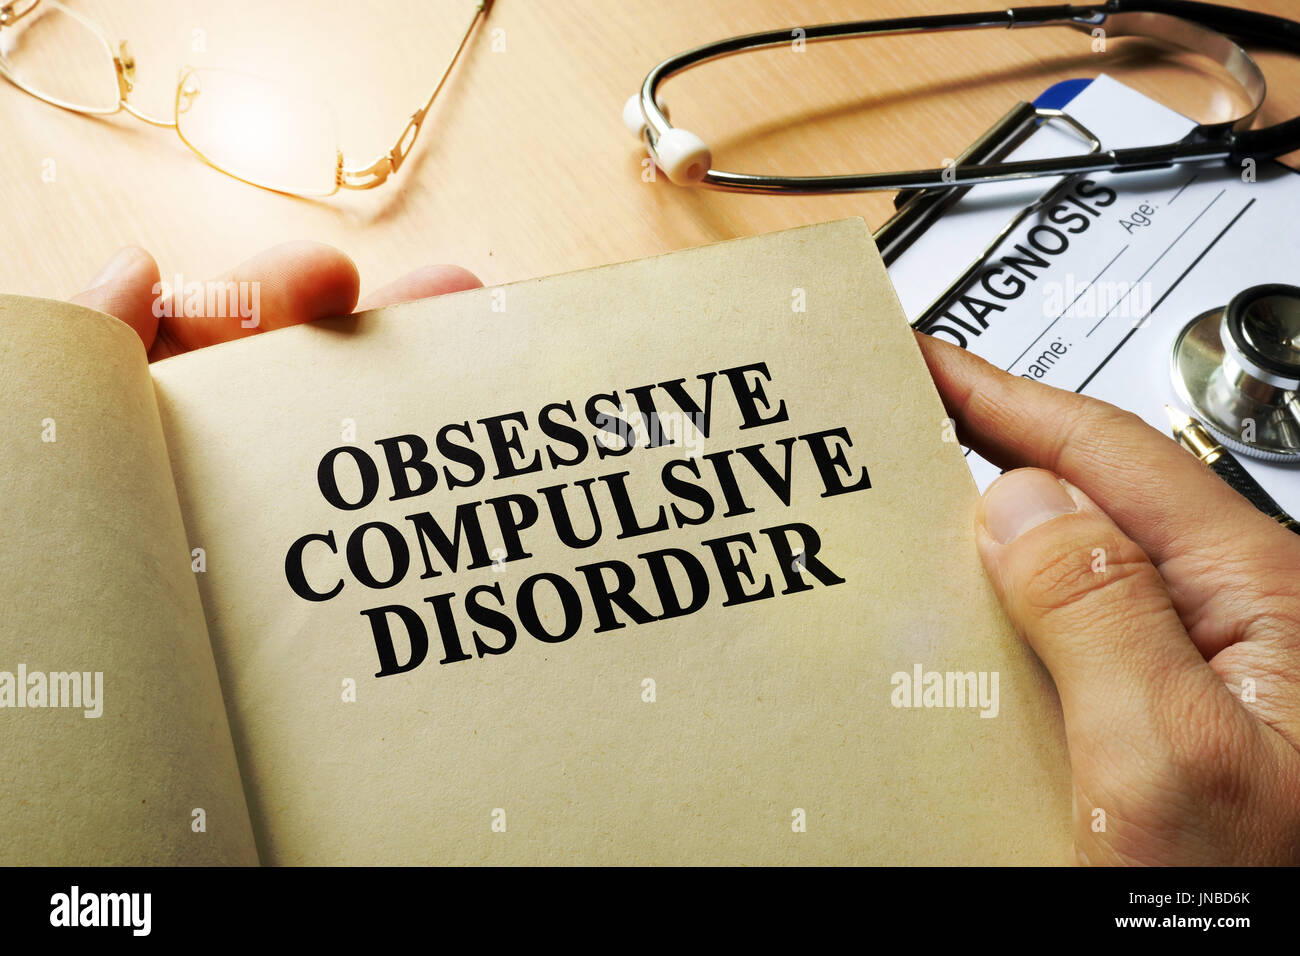 Obsessive Compulsive Disorder Stock Photos Amp Obsessive